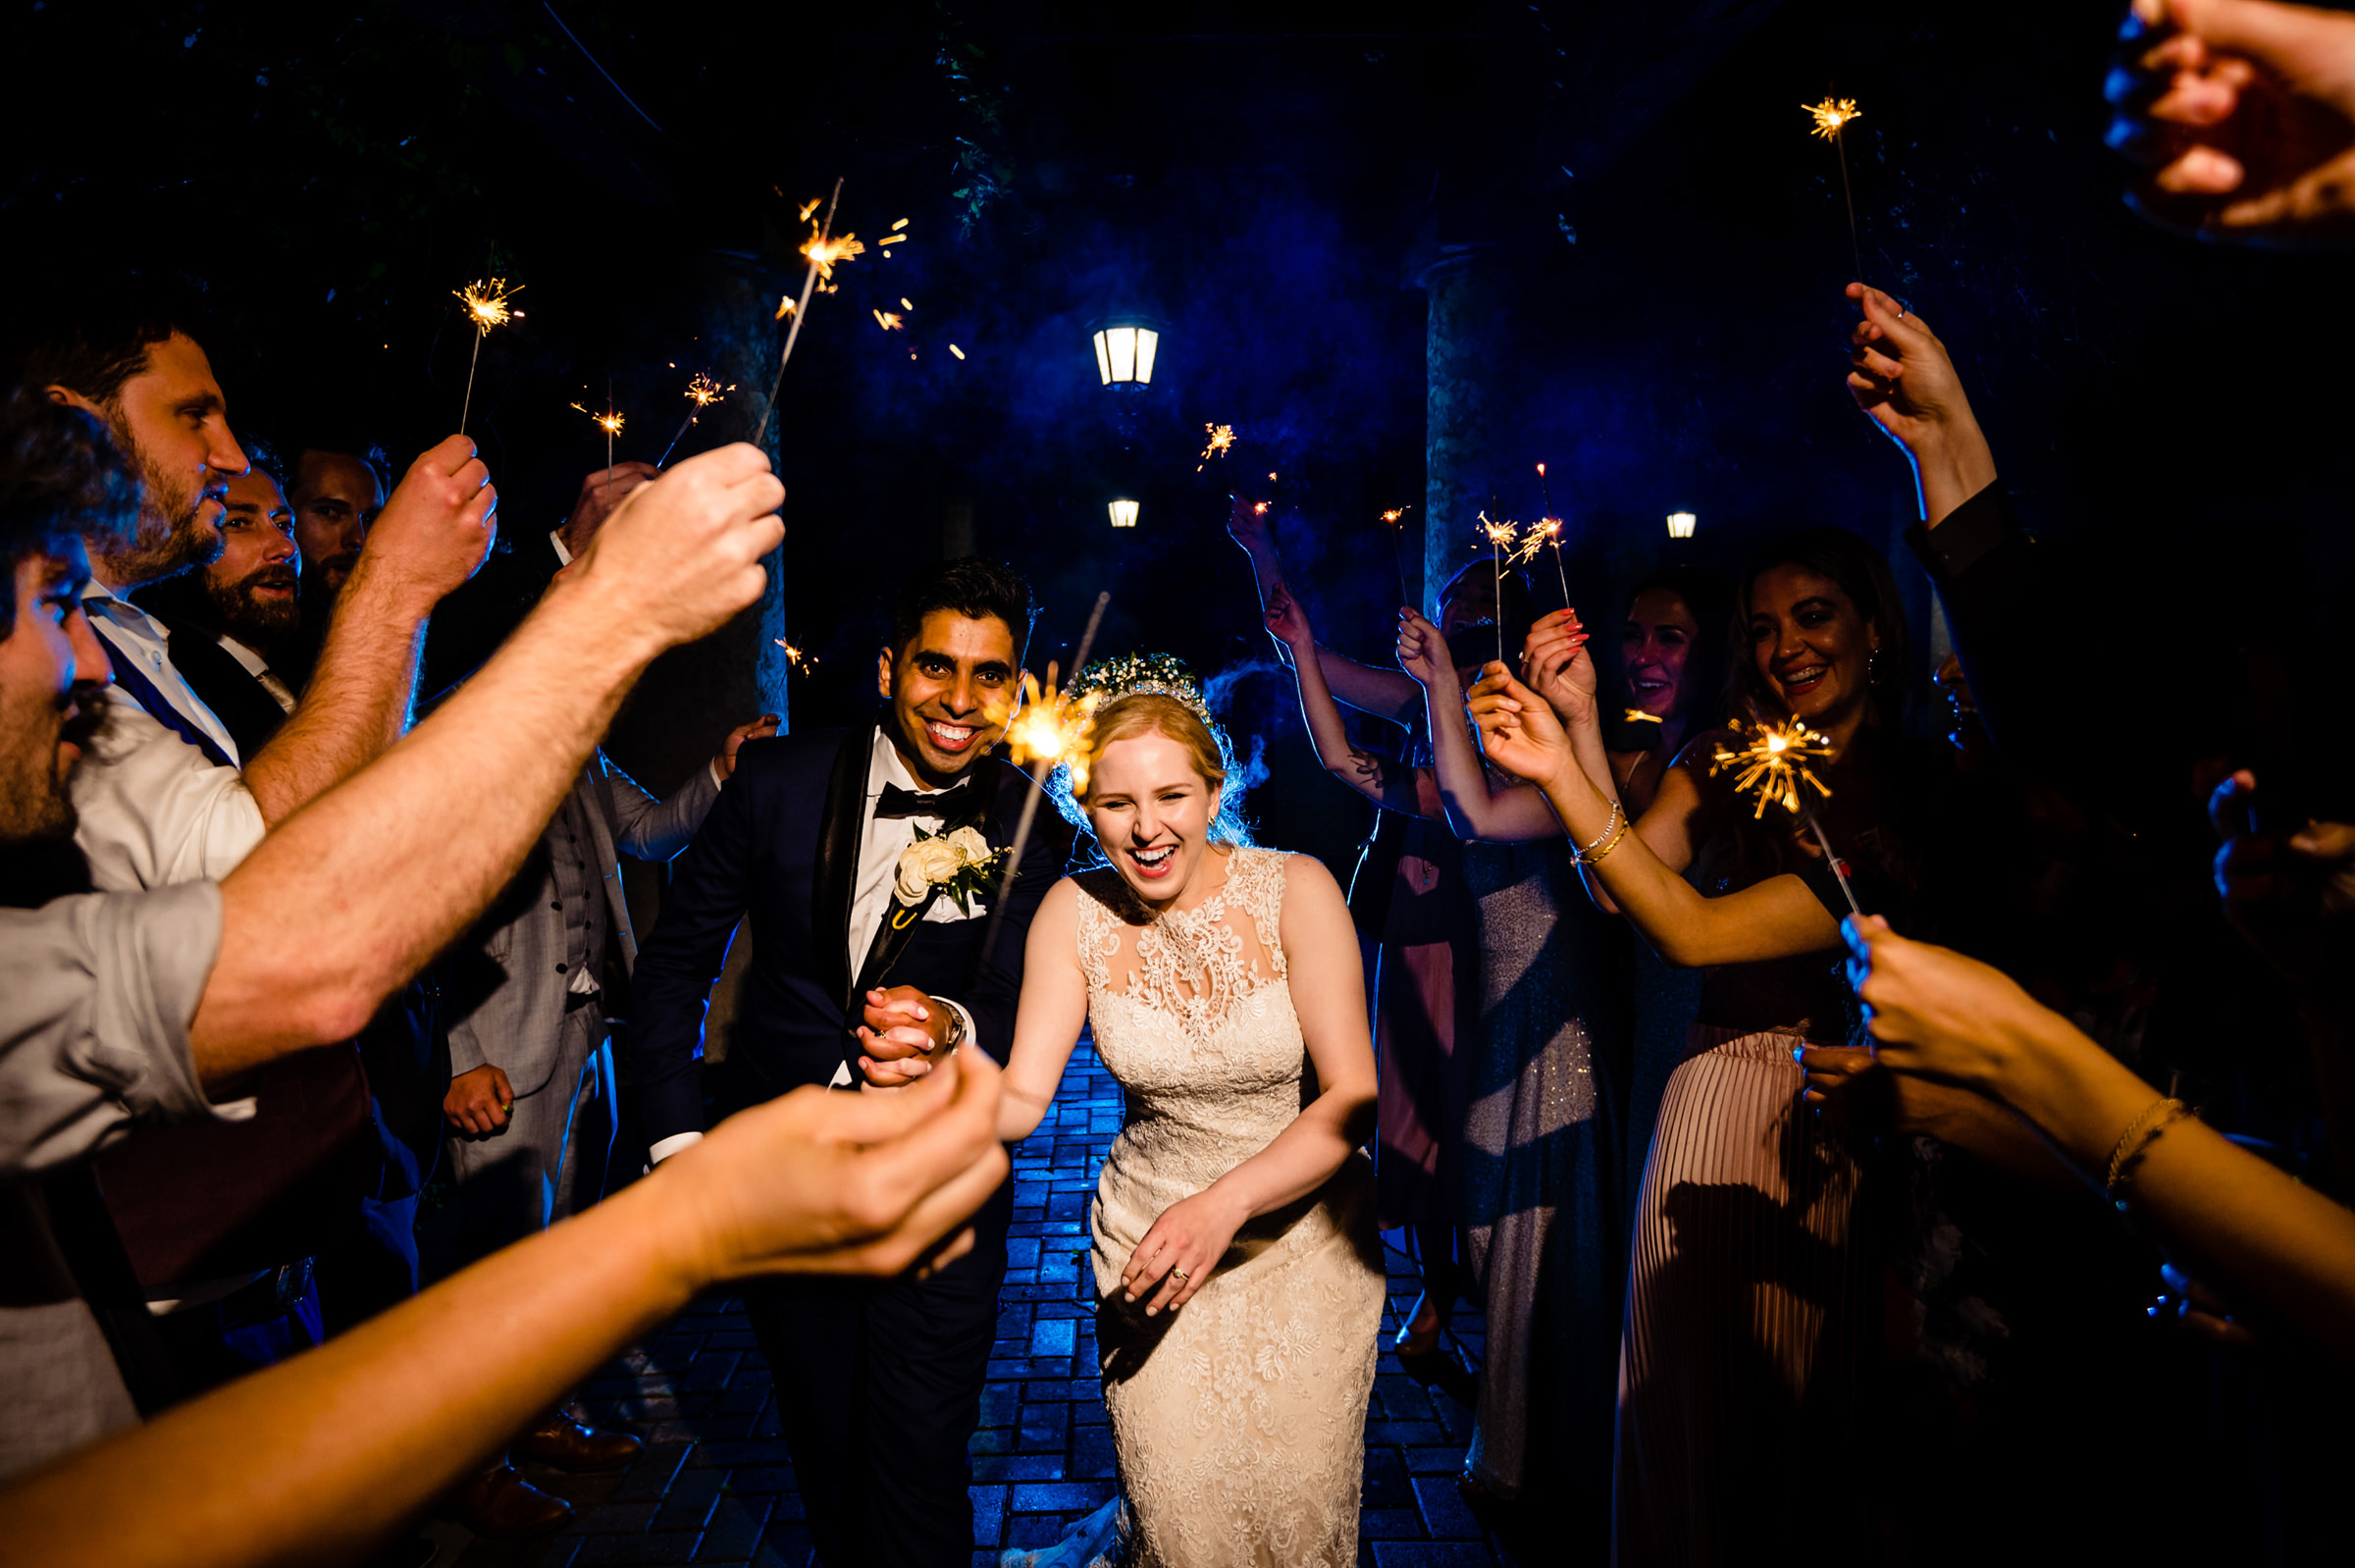 Couple exits through sparklers - photo by Moore Photography